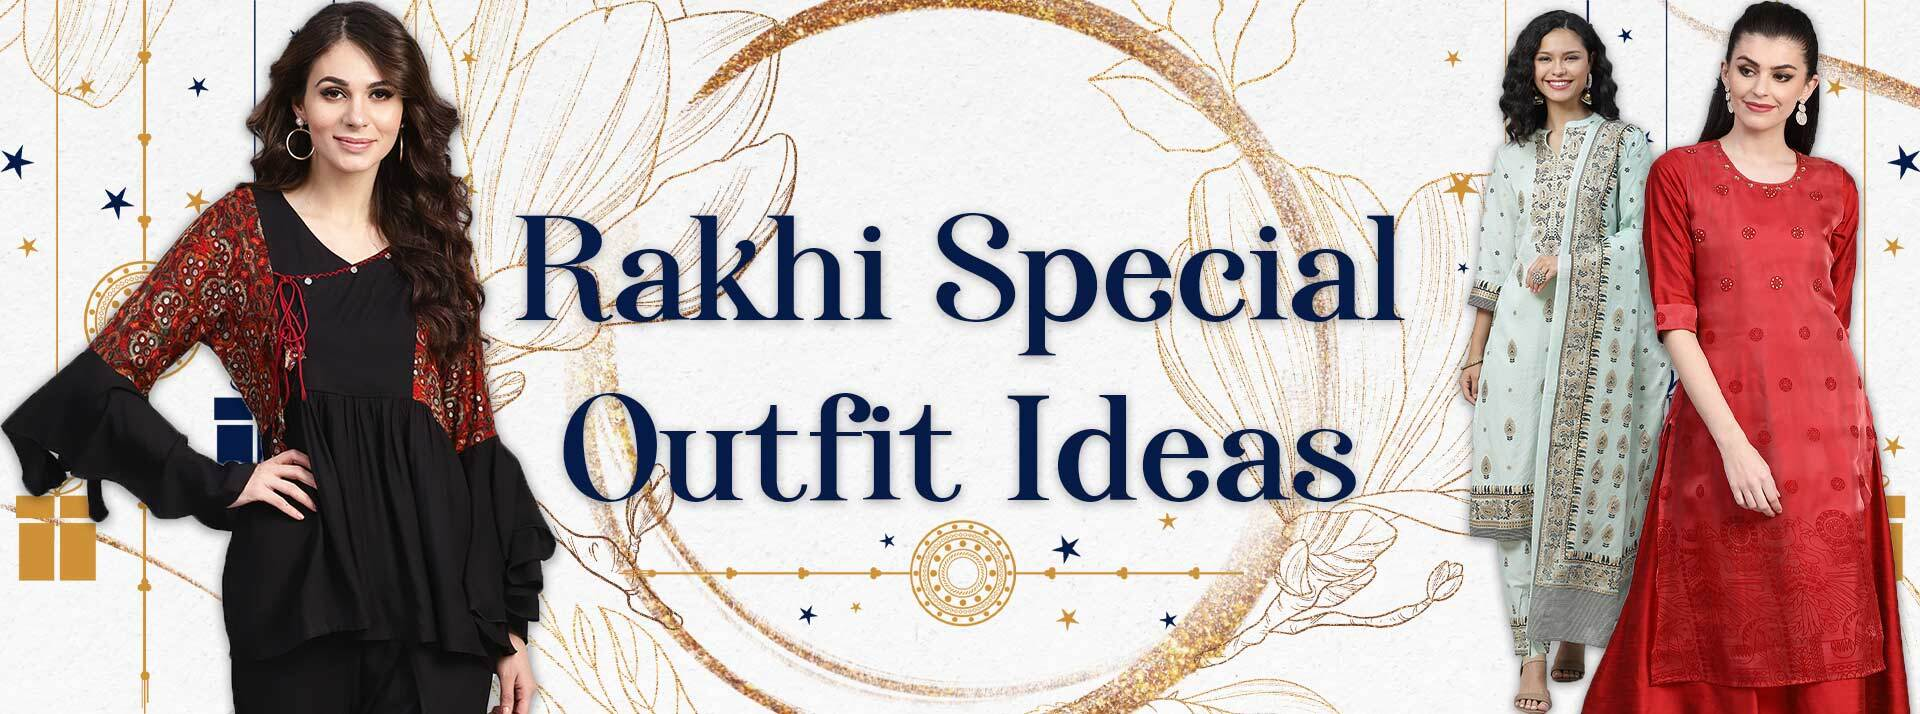 Rakhi Special Outfits